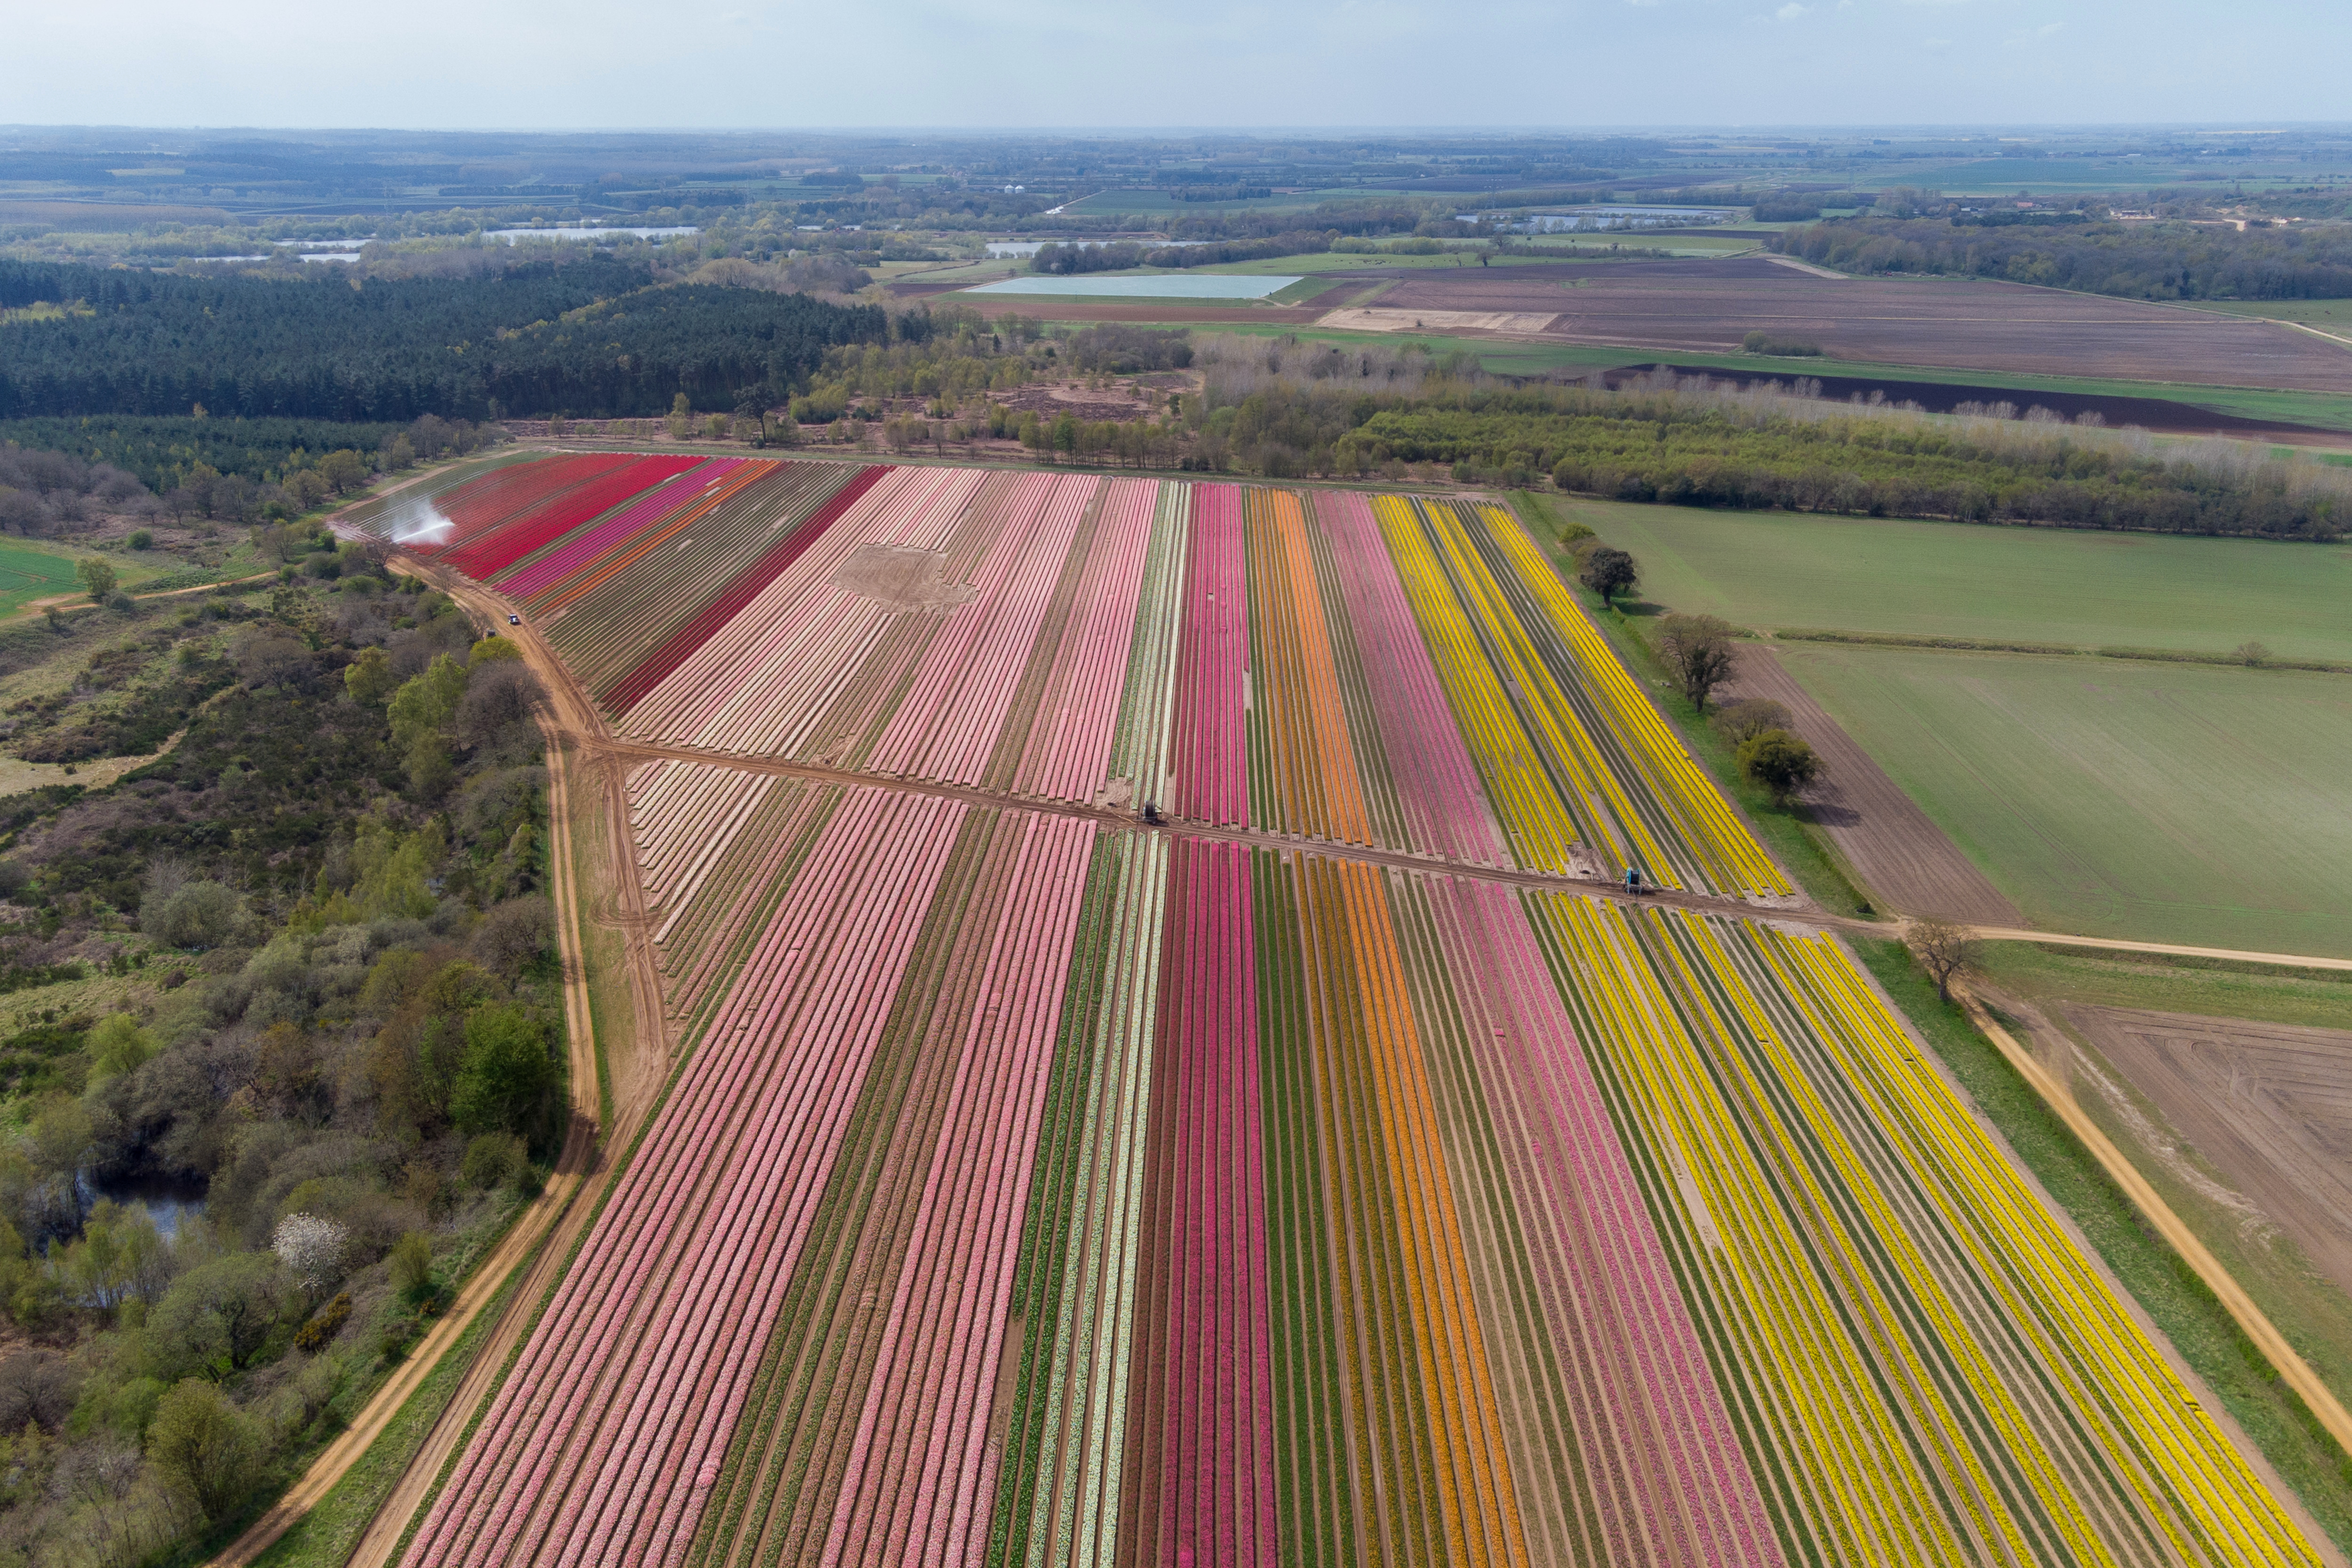 <p>Millions of tulips in flower near King's Lynn in Norfolk, as Belmont Nurseries, the UK's largest commercial grower of outdoor tulips, offers socially-distanced visits to its tulip fields at Hillington to raise funds for local charity The Norfolk Hospice Tapping House. Picture date: Wednesday April 28, 2021.</p>